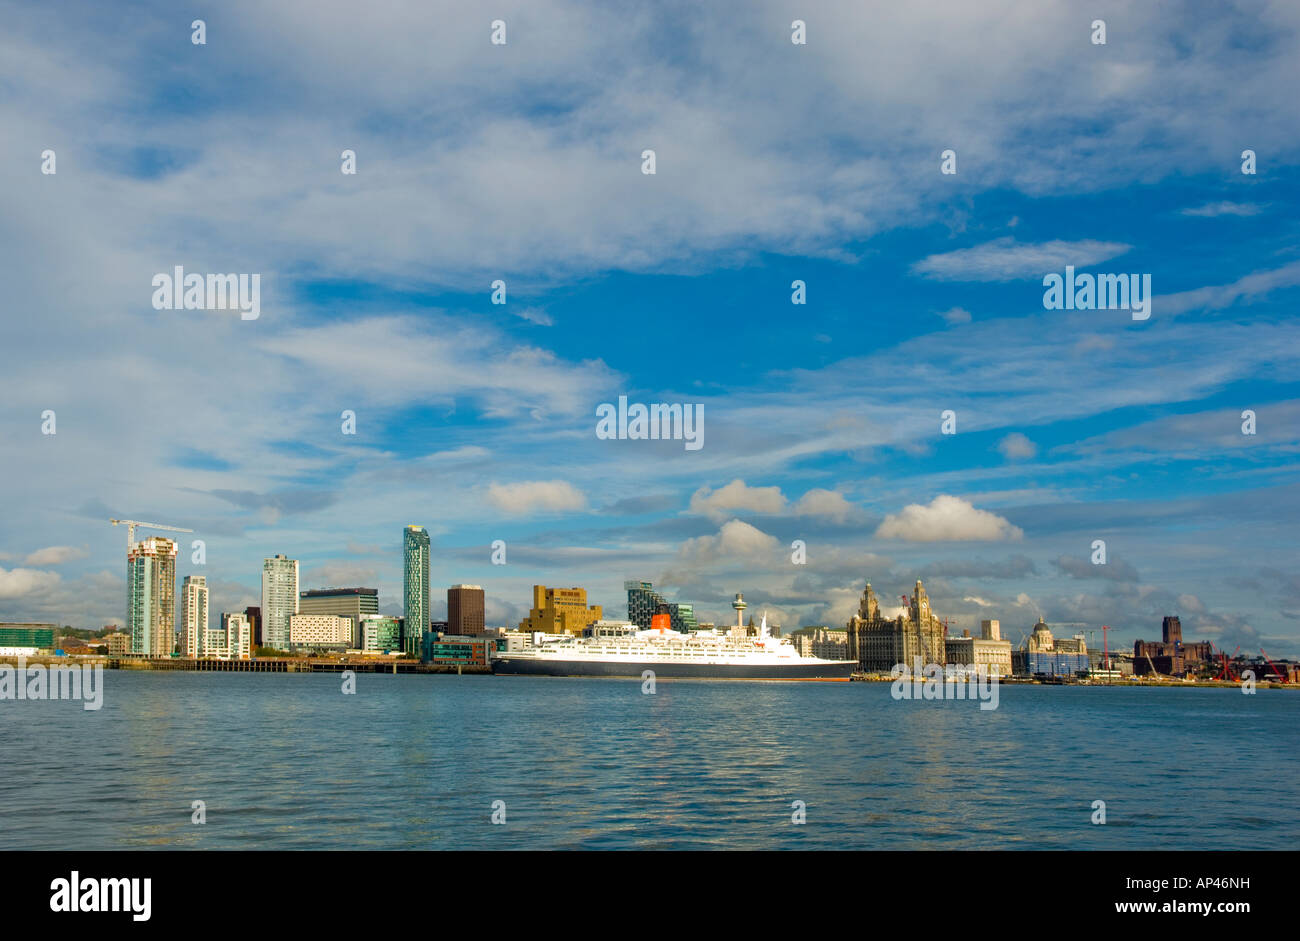 Liverpool waterfront showing the QE2 berthed at the new cruise liner trerminal - Stock Image